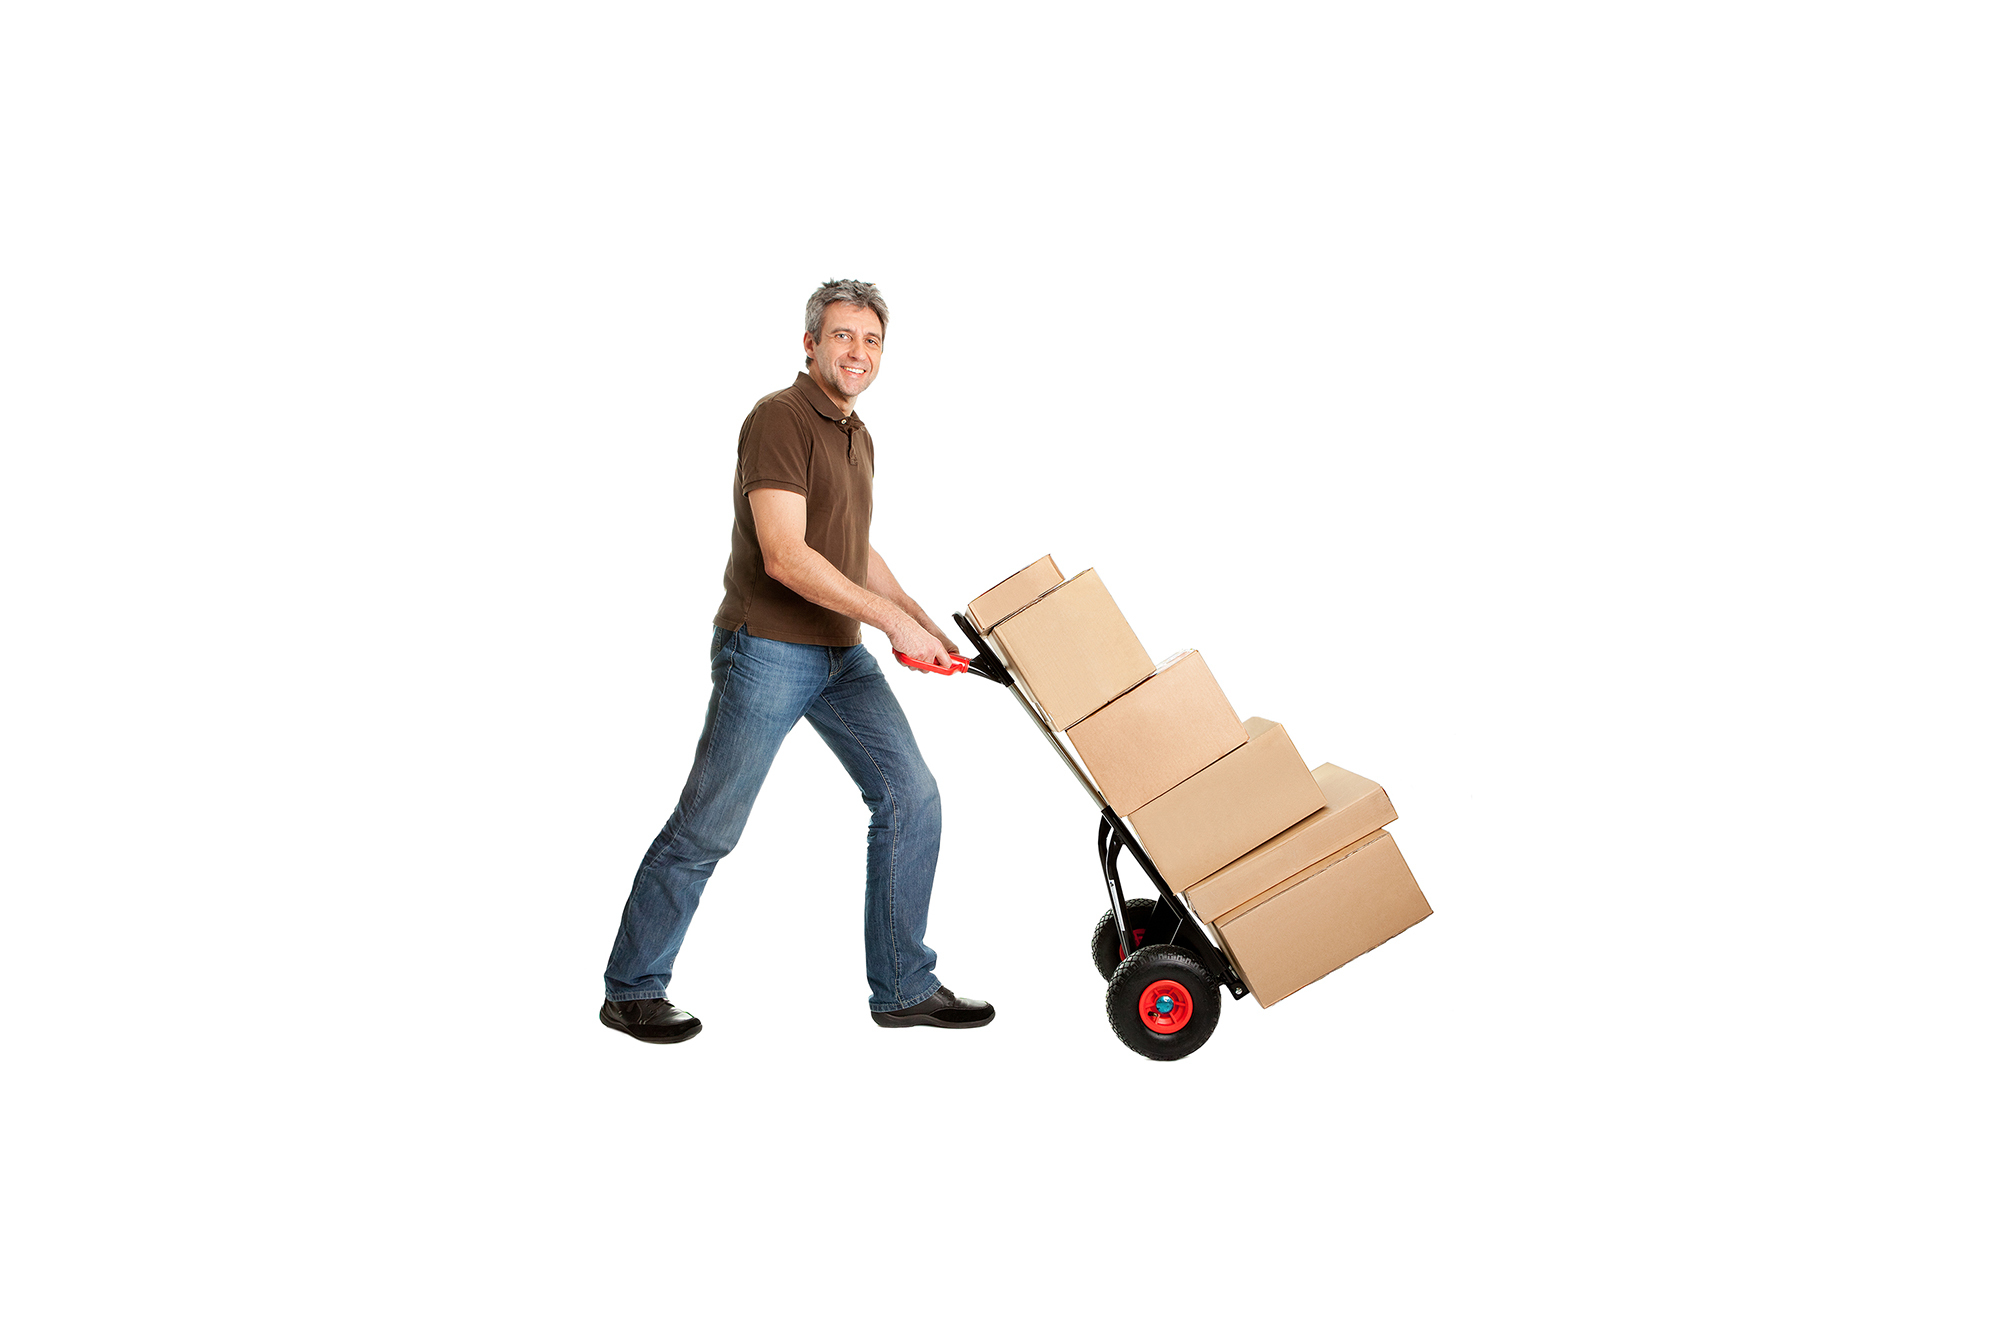 Man using trolley to carry boxes